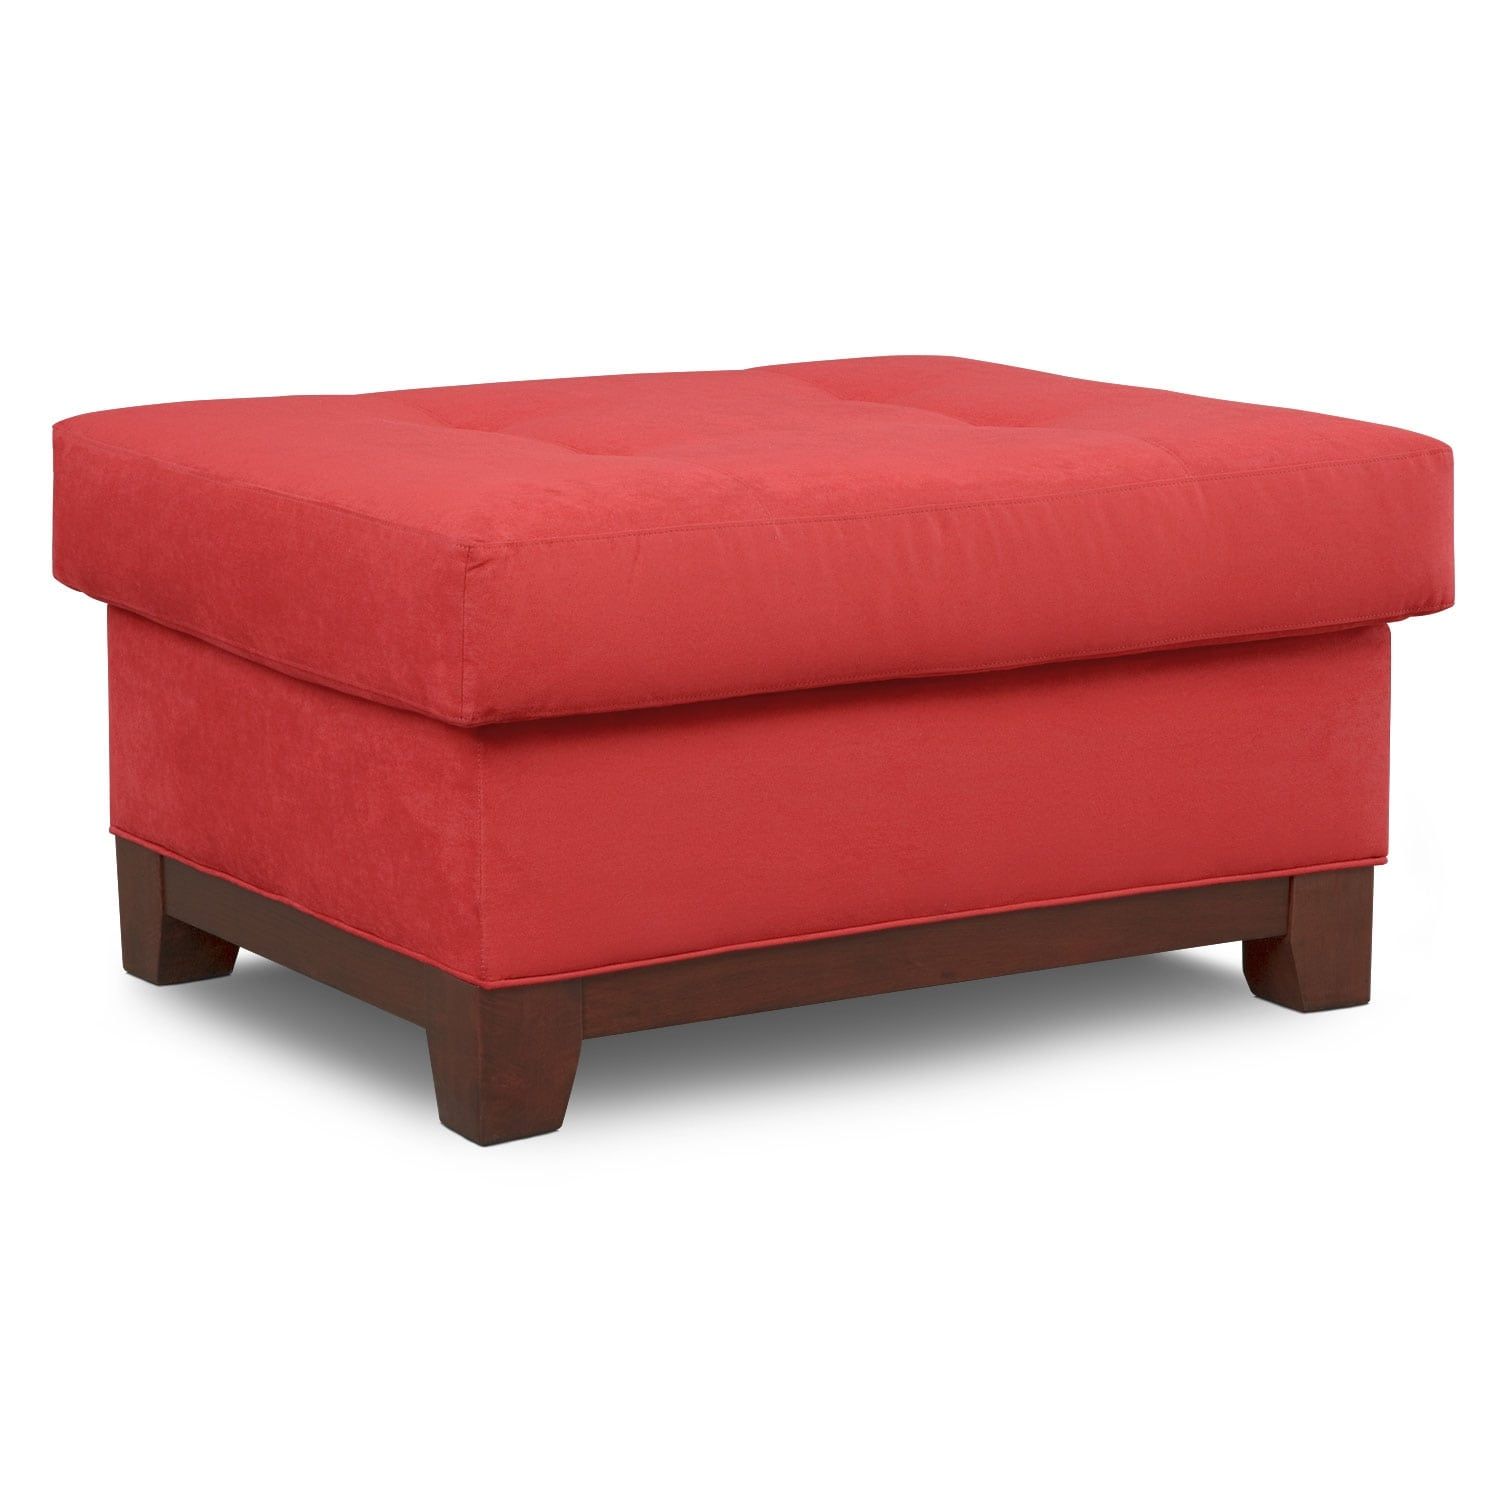 Living Room Furniture - Soho Ottoman